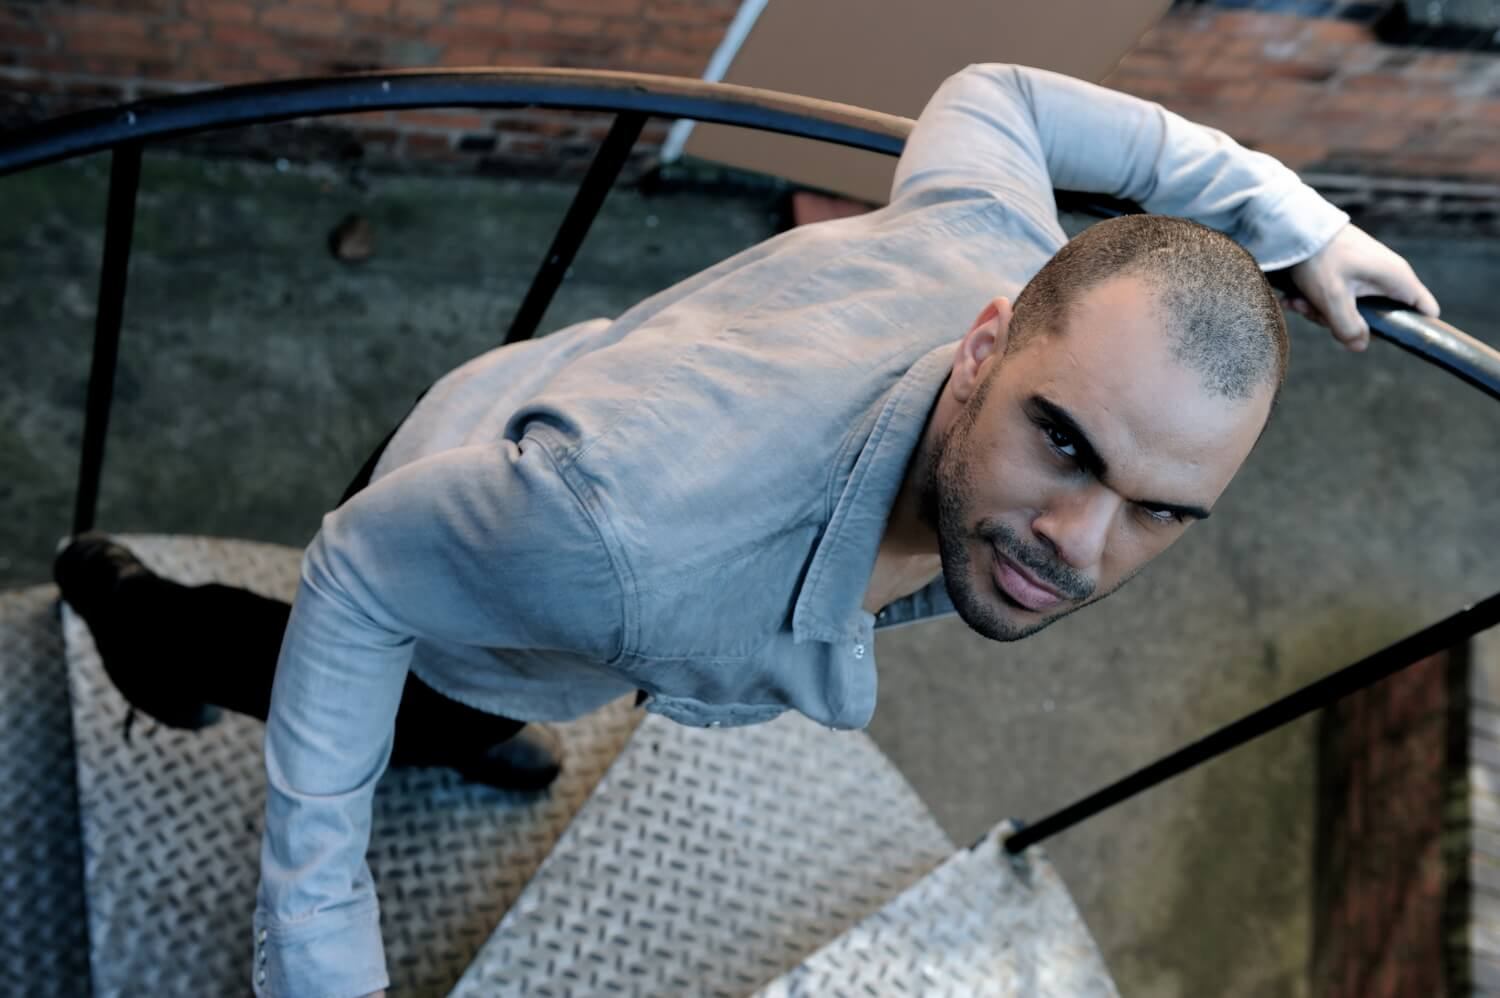 Professional male model portfolio photographer, vibrant, edgy studio and location photo shoot, stylish shots in a cool, urban environment, strong photography in Birmingham